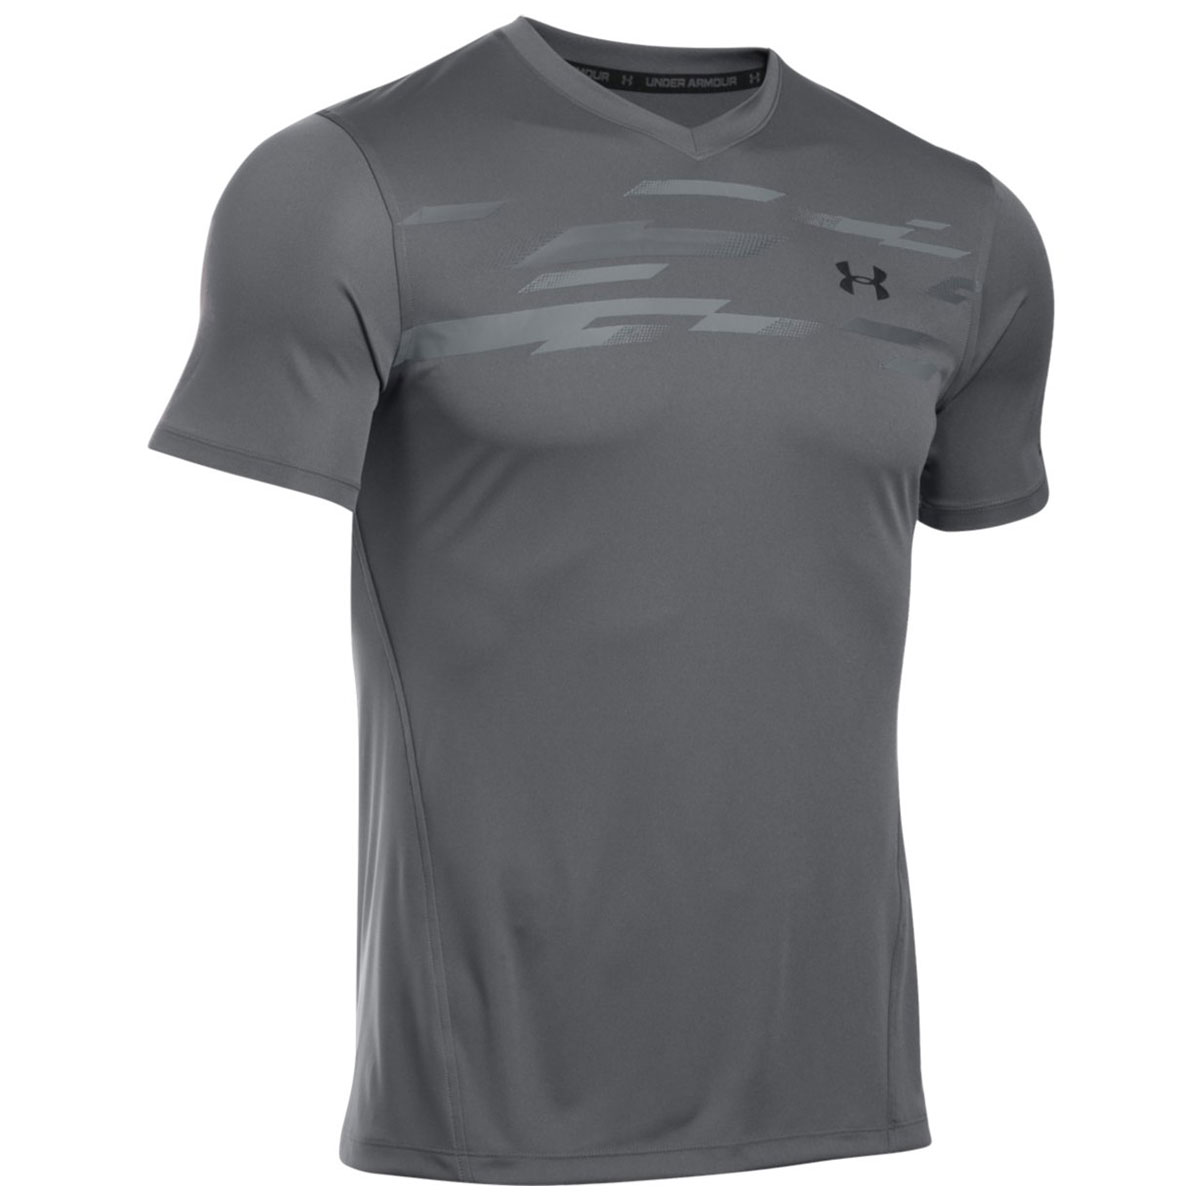 Under armour 2017 mens ua challenger graphic t shirt for Under armour fitted t shirt